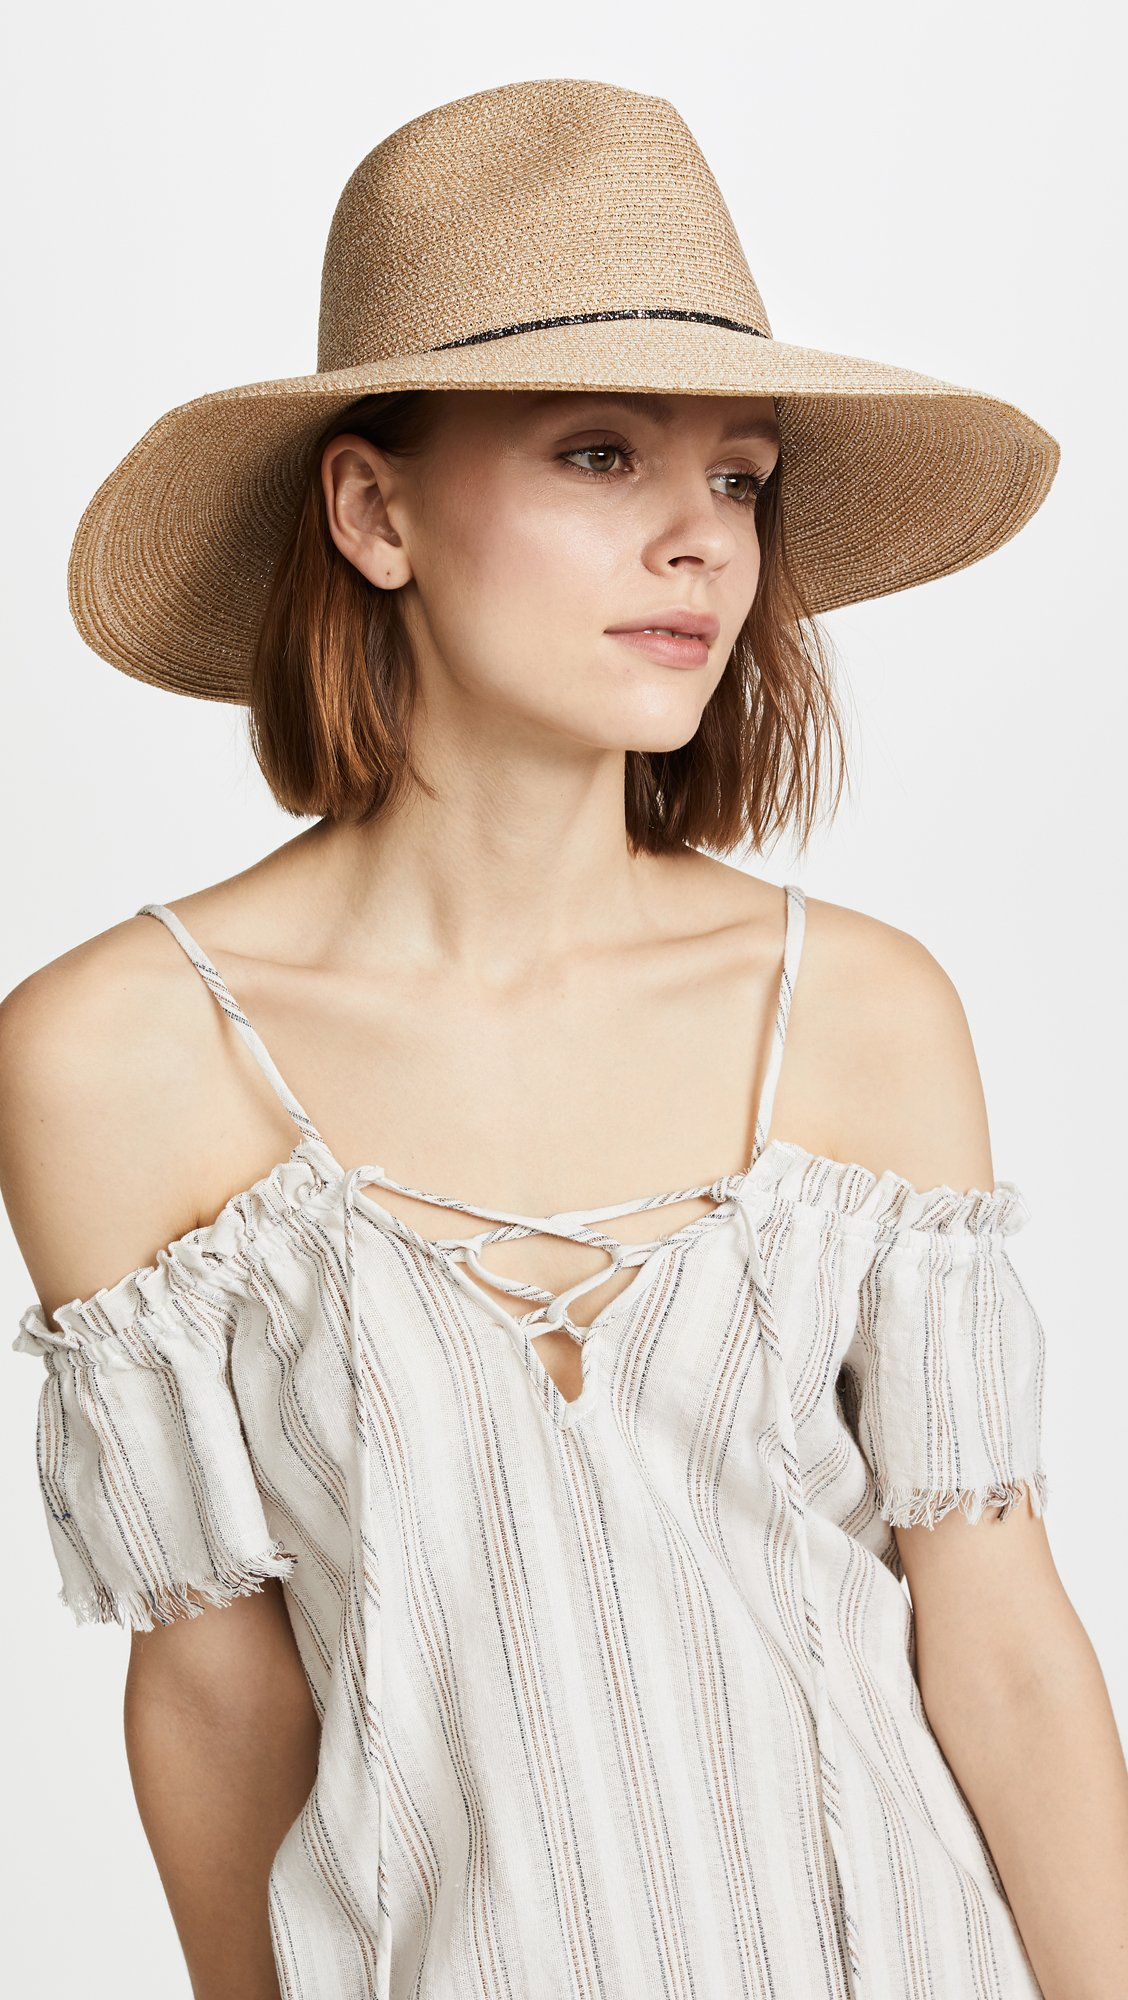 Eugenia Kim Women's Emmanuelle Beach Hat, Sand, One Size by Eugenia Kim (Image #2)